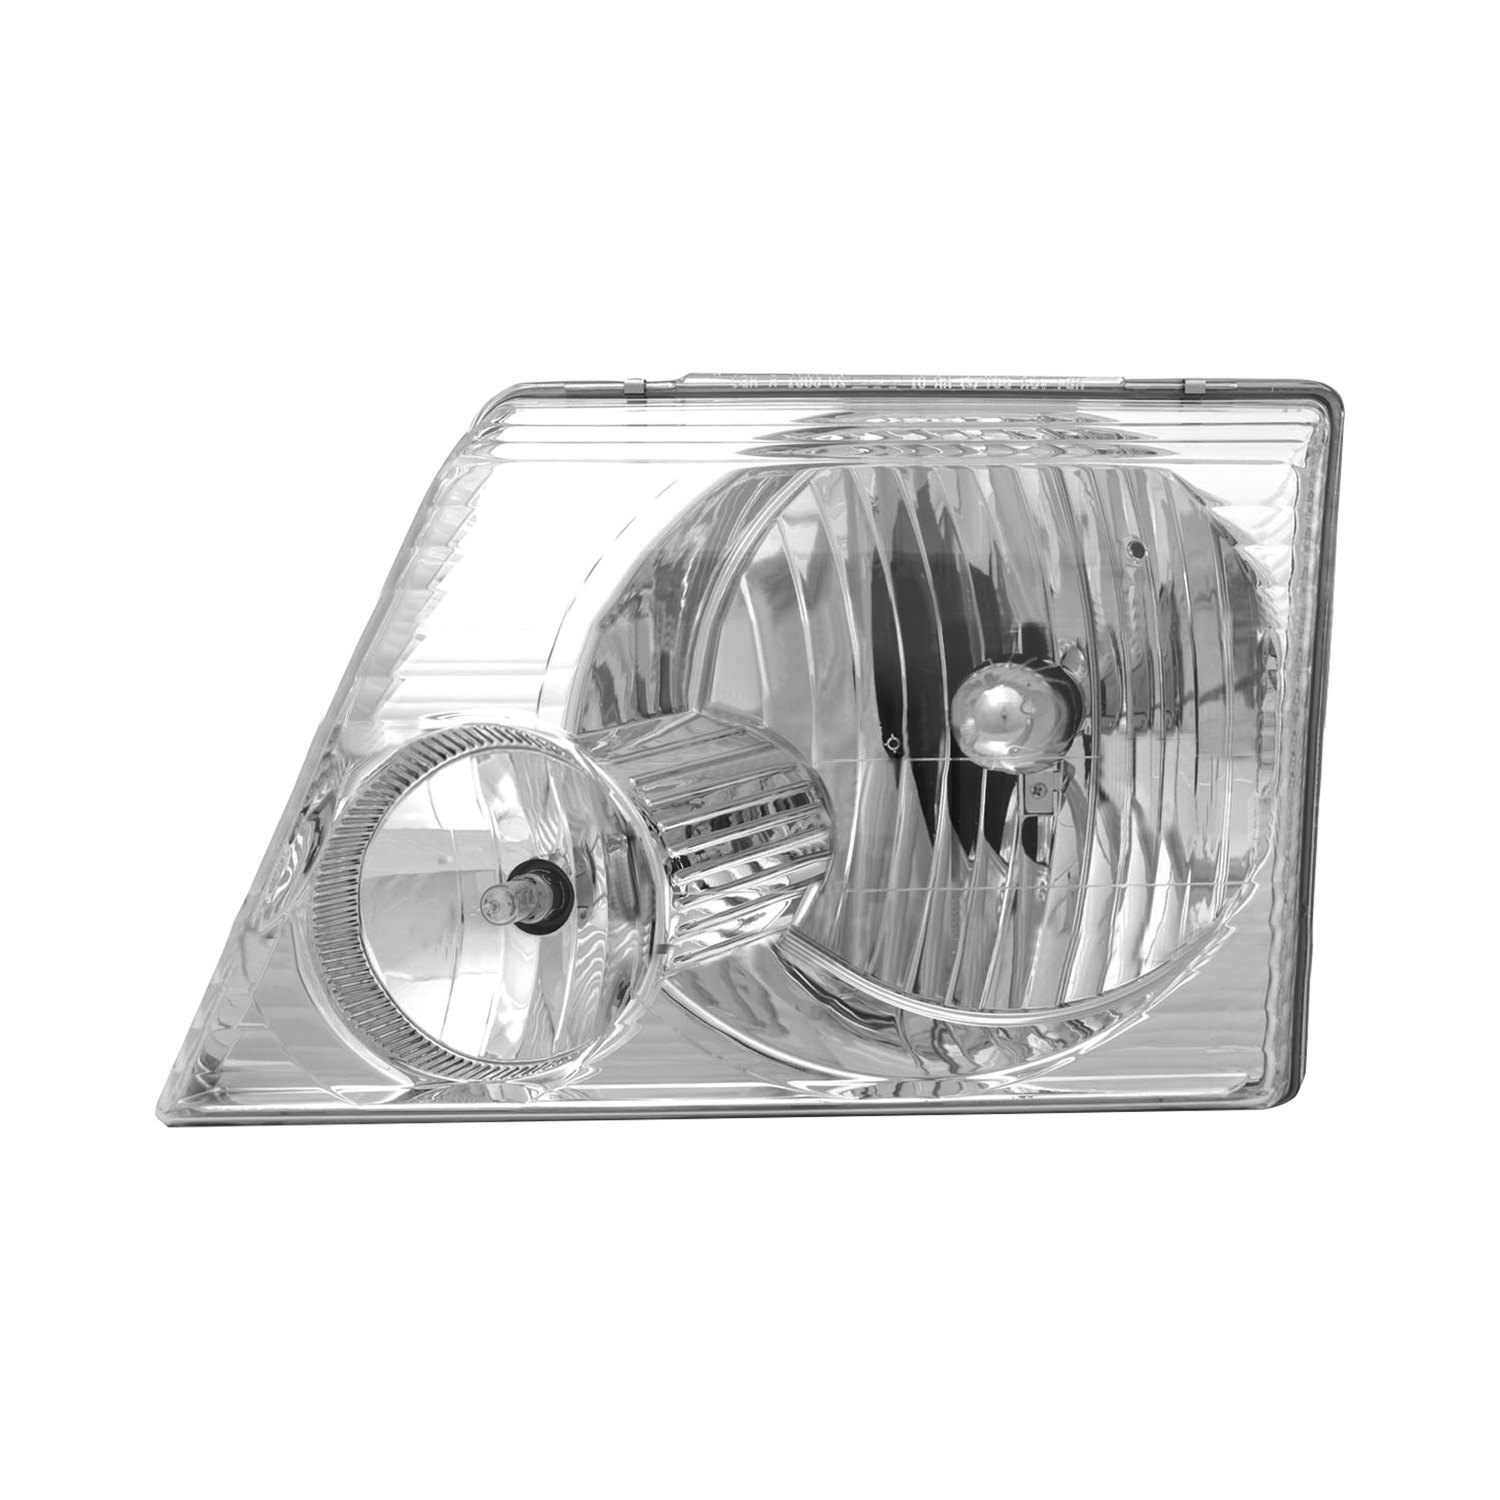 tyc ford explorer 2003 replacement headlight. Black Bedroom Furniture Sets. Home Design Ideas